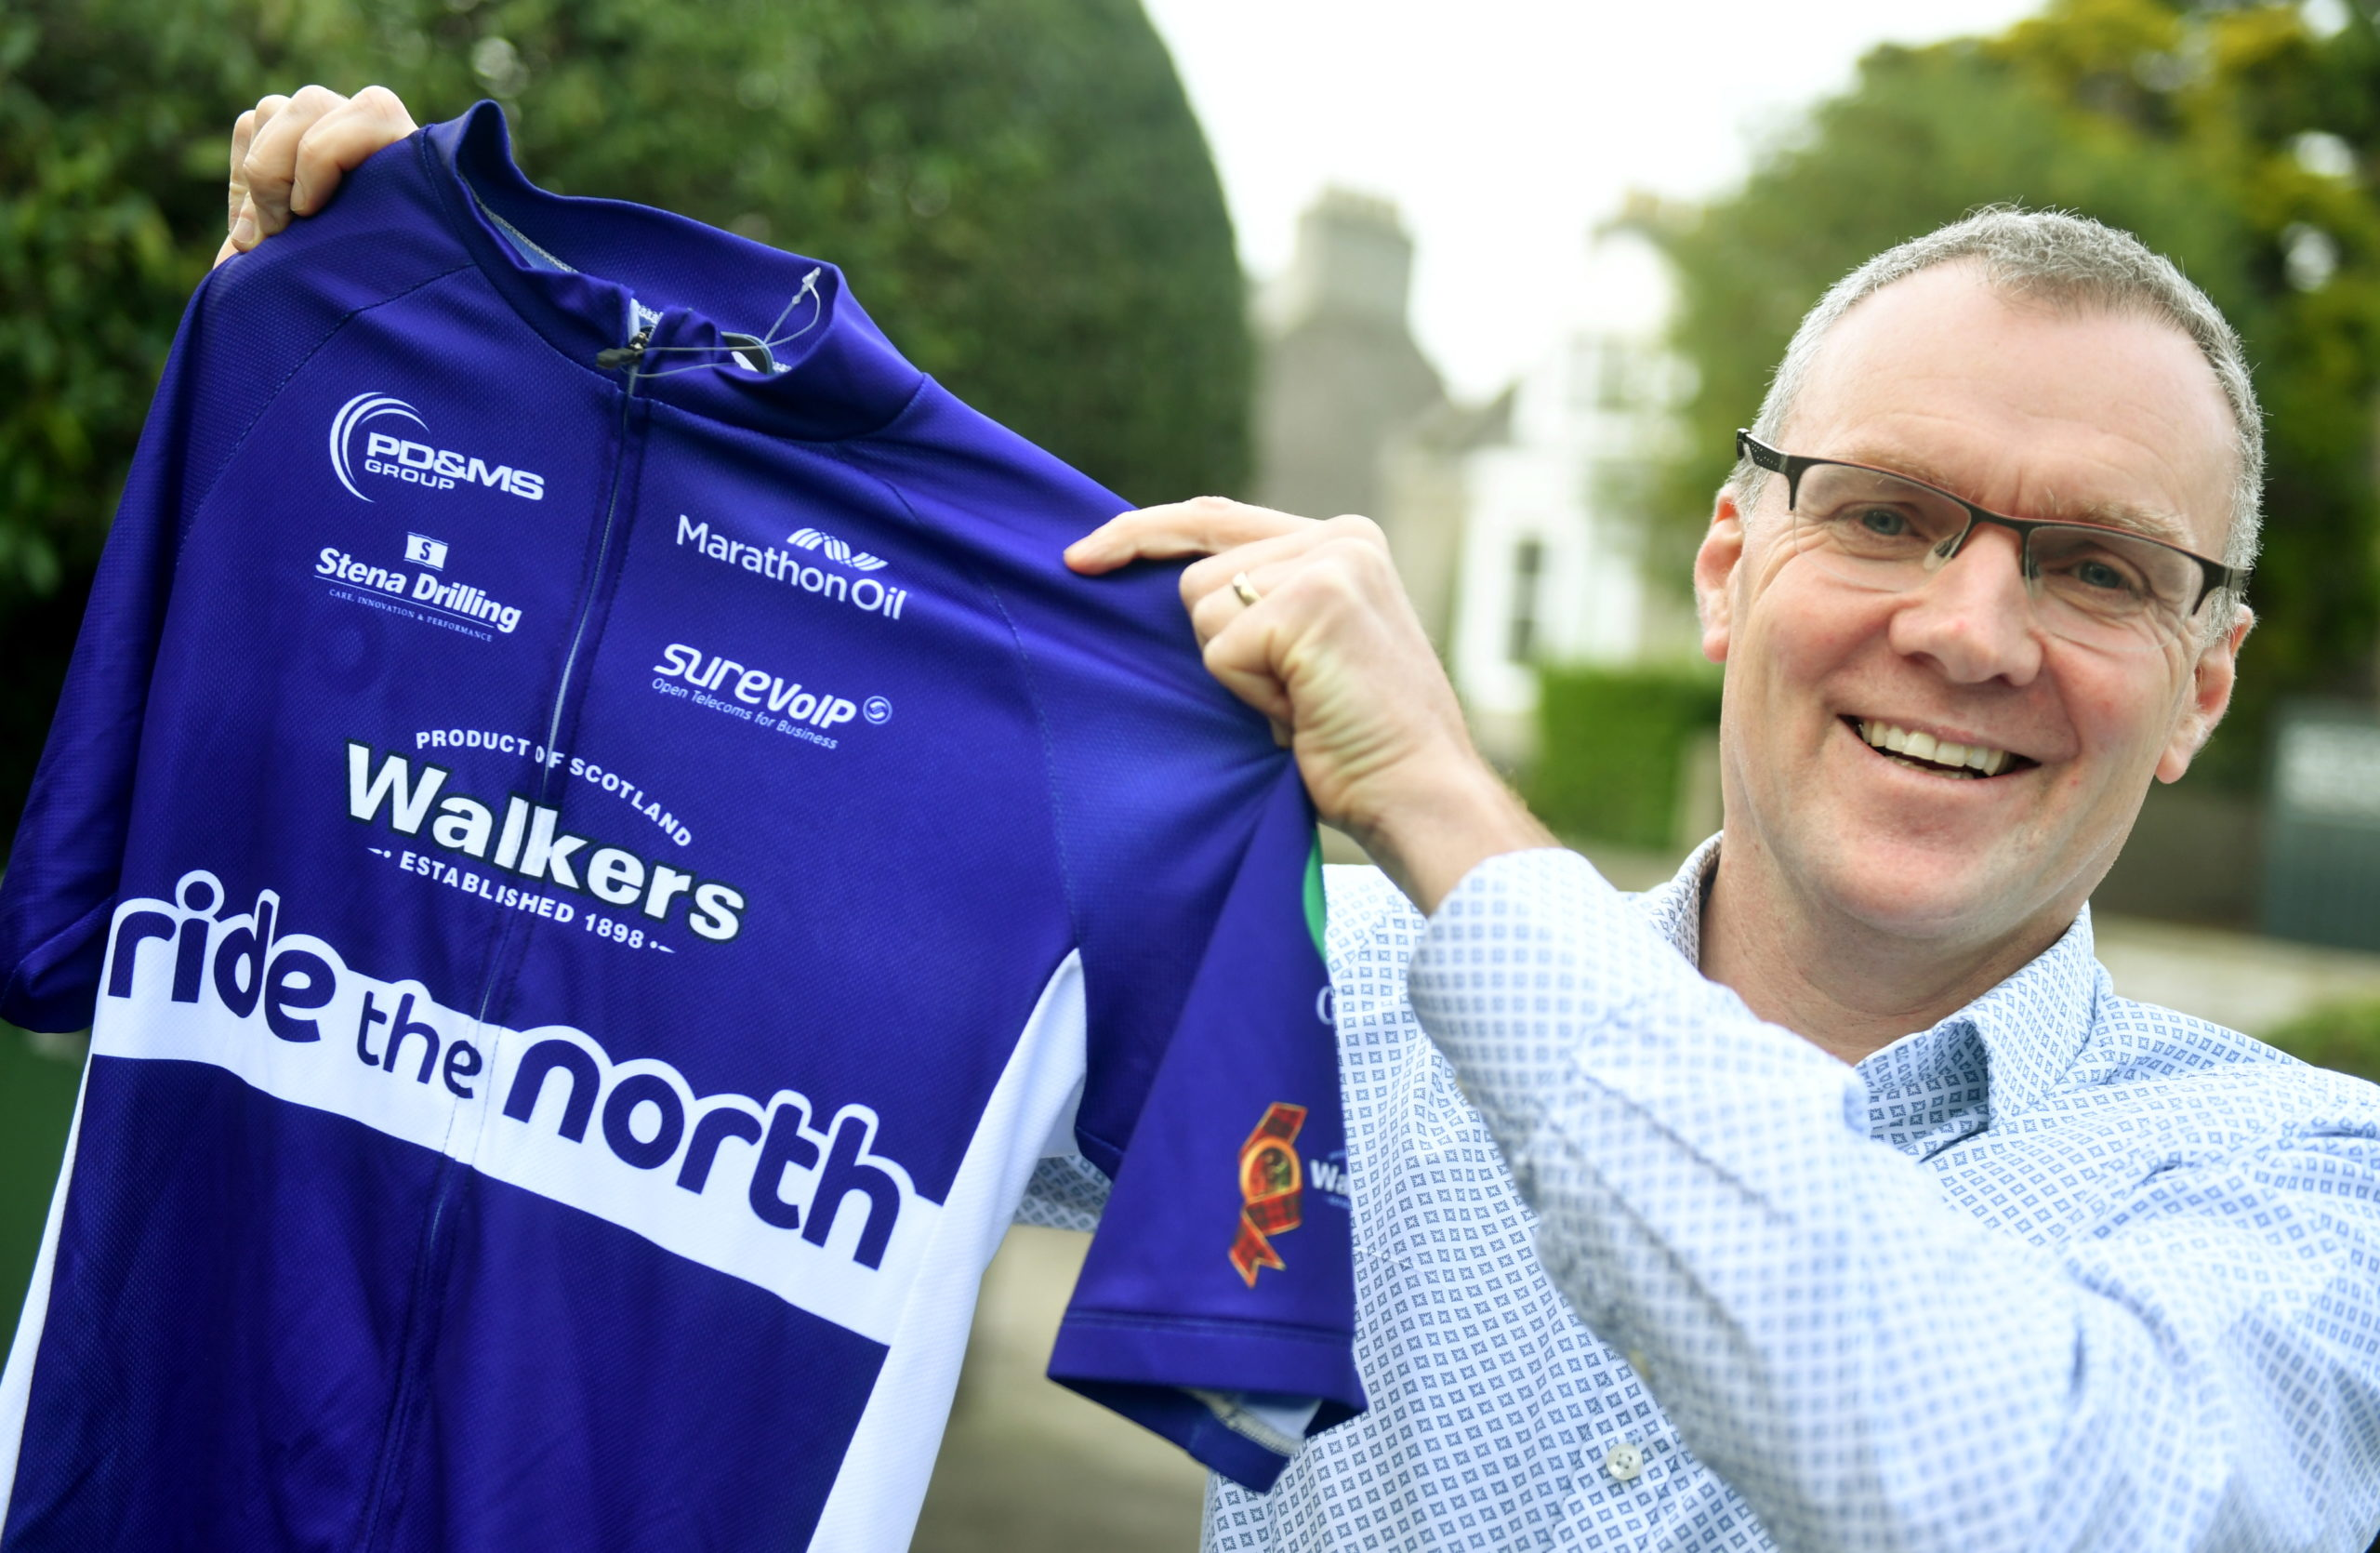 Neil Innes has been organising the cycling event Ride the North since its inception in 2011.